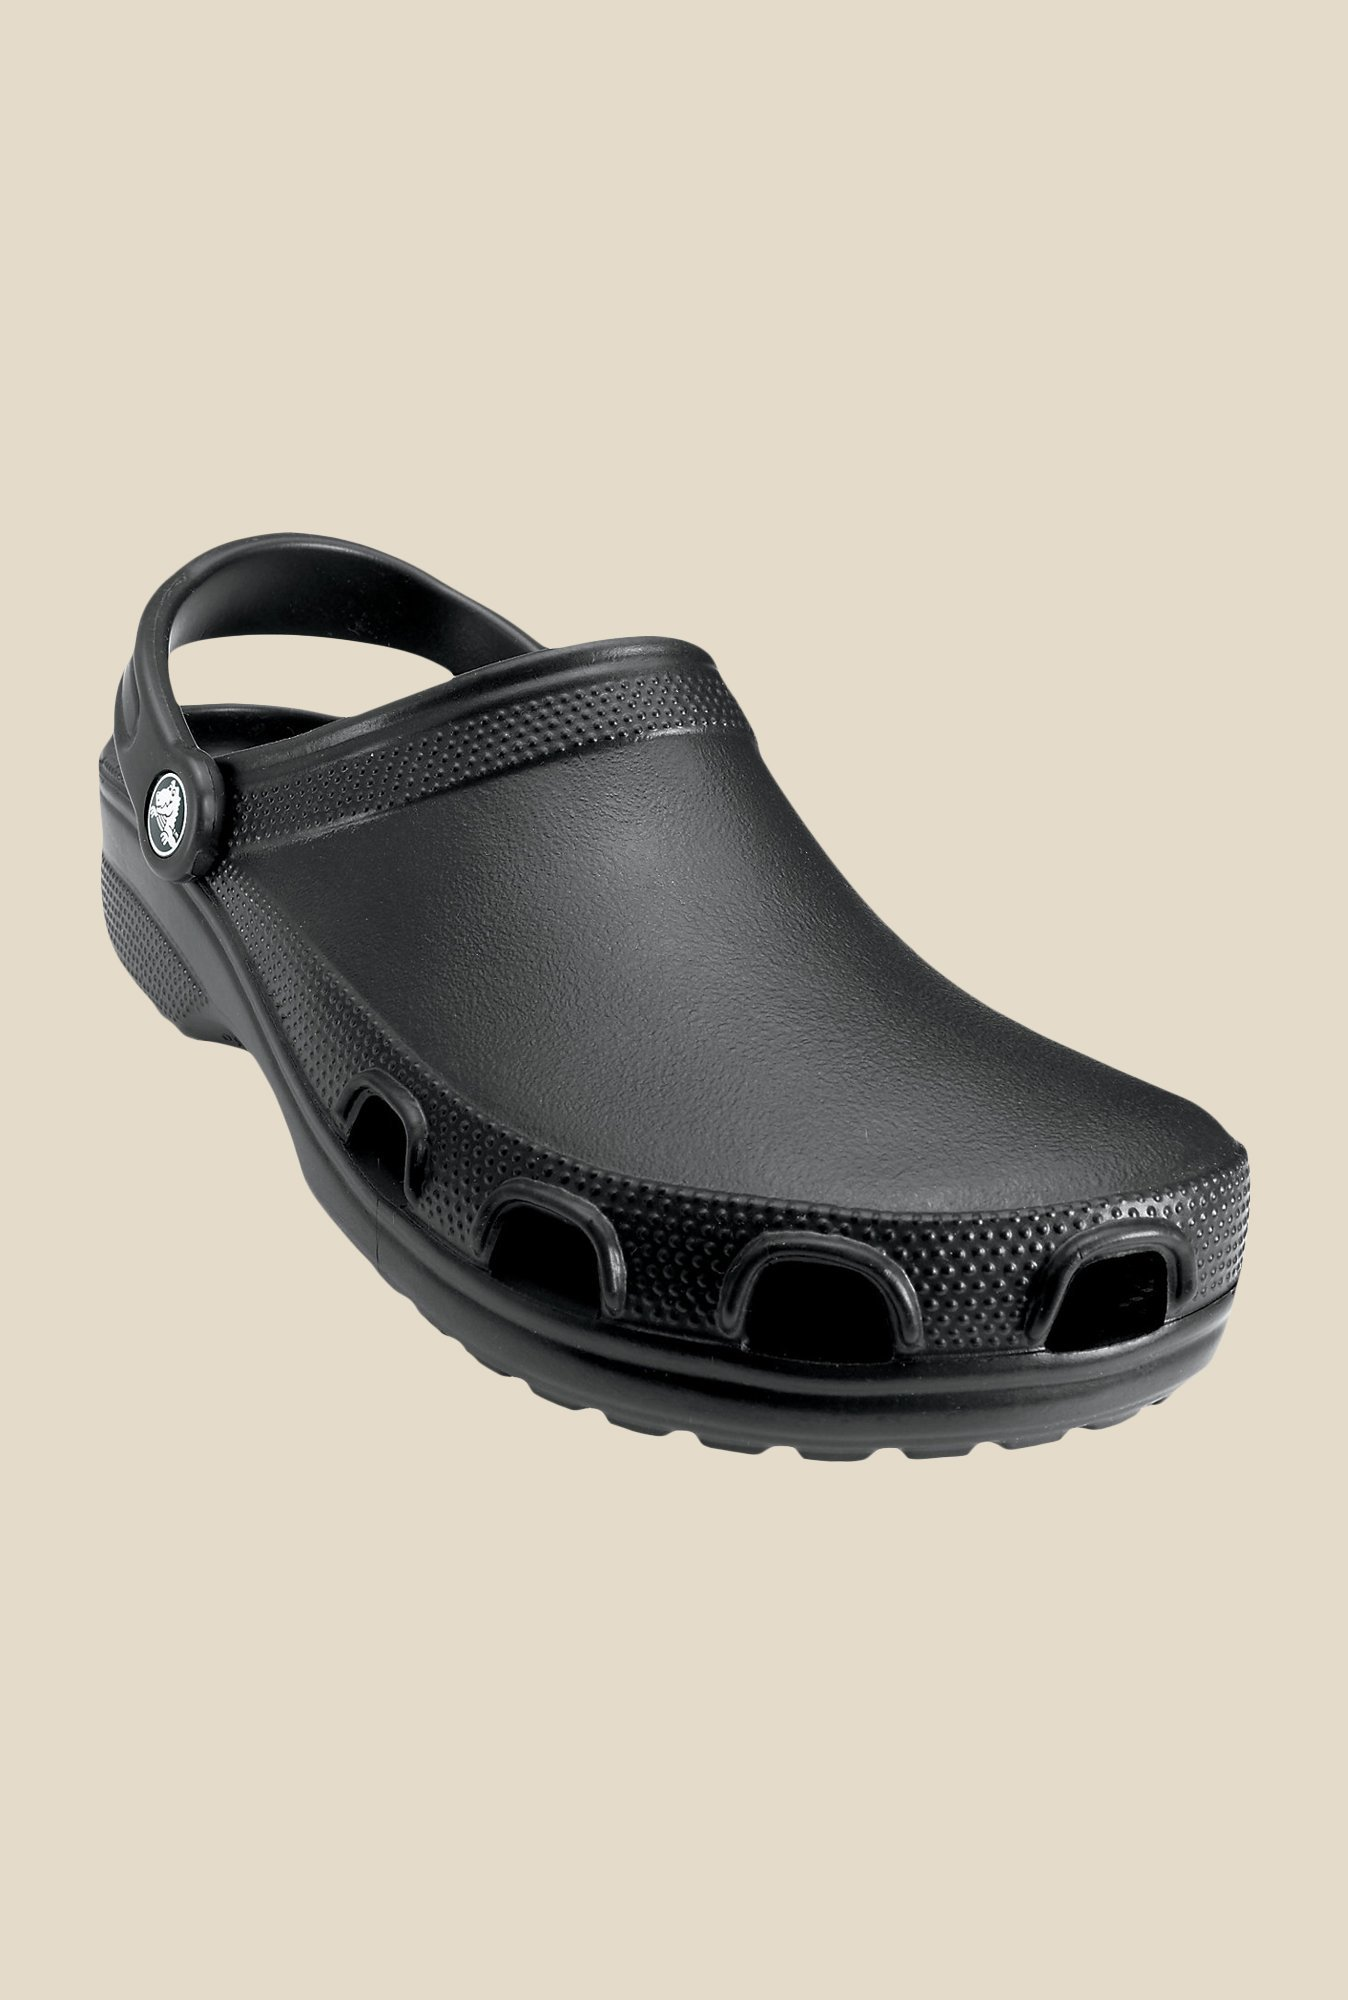 Crocs Relief Black Clogs